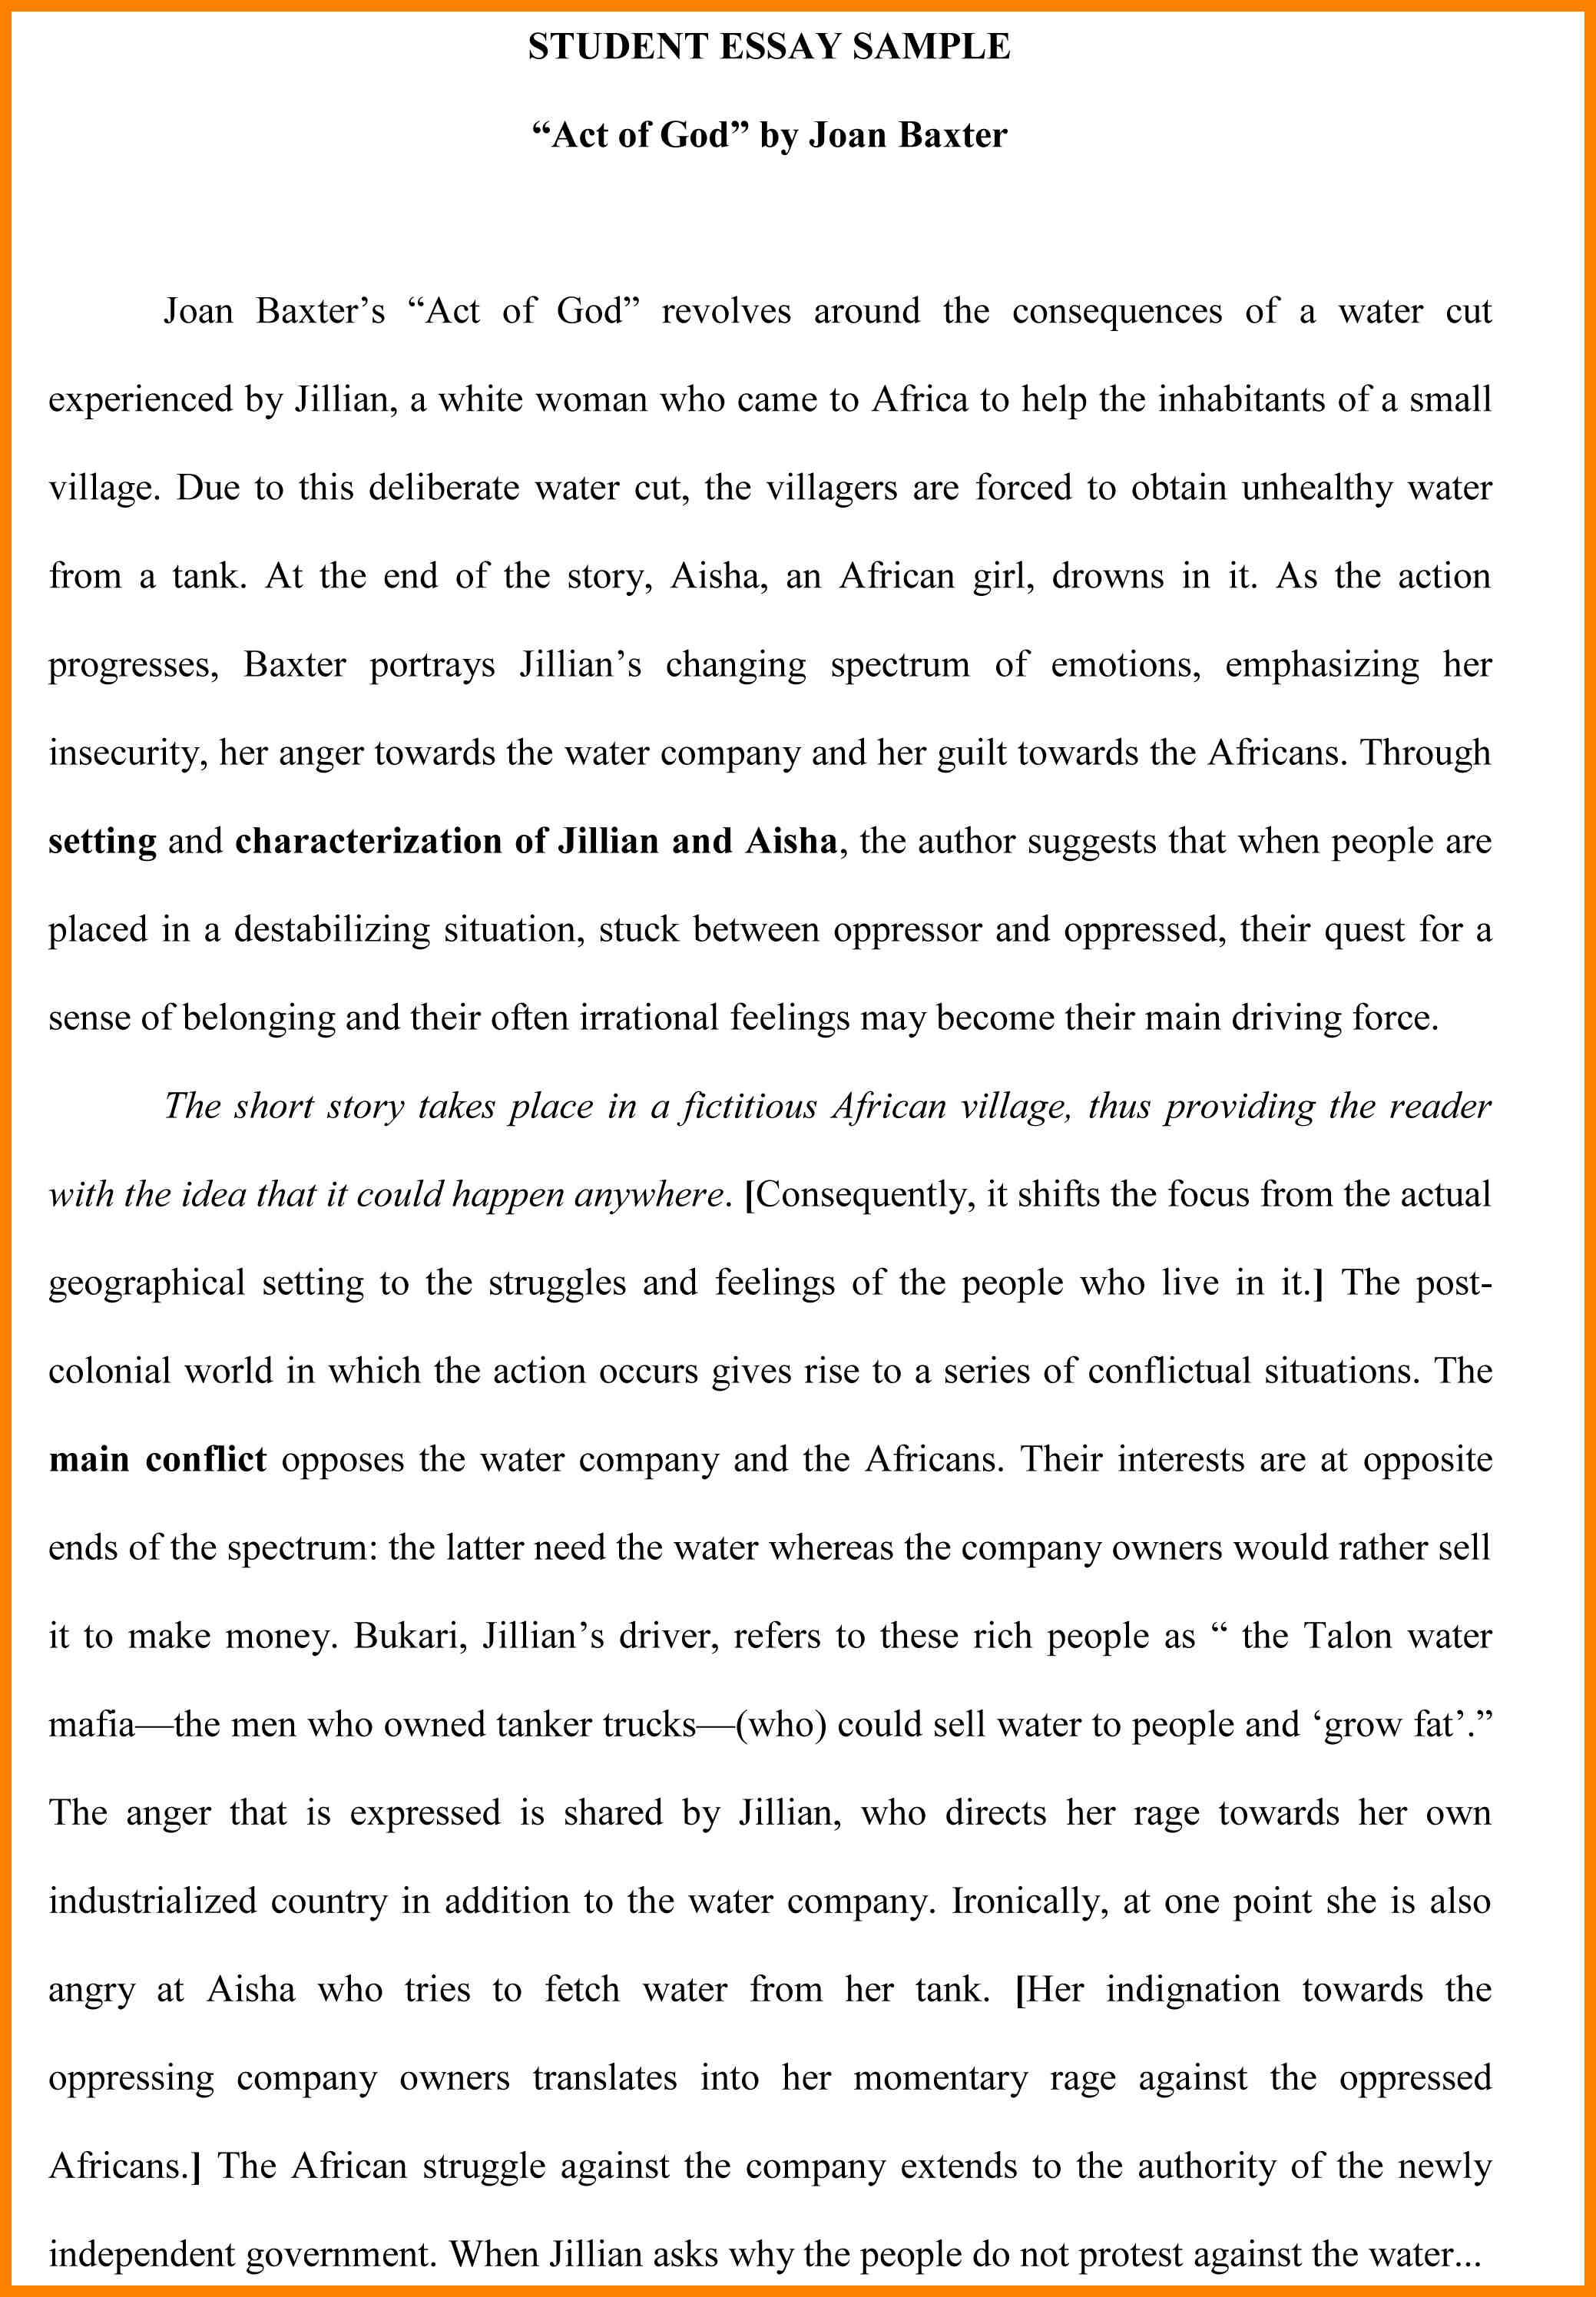 008 How To Write Better Essays Essay Example Examples Of Process Pdf Good Student Download Descriptive Great Law Steve Foster Lauren Awesome Can I In English Literature Greetham Full